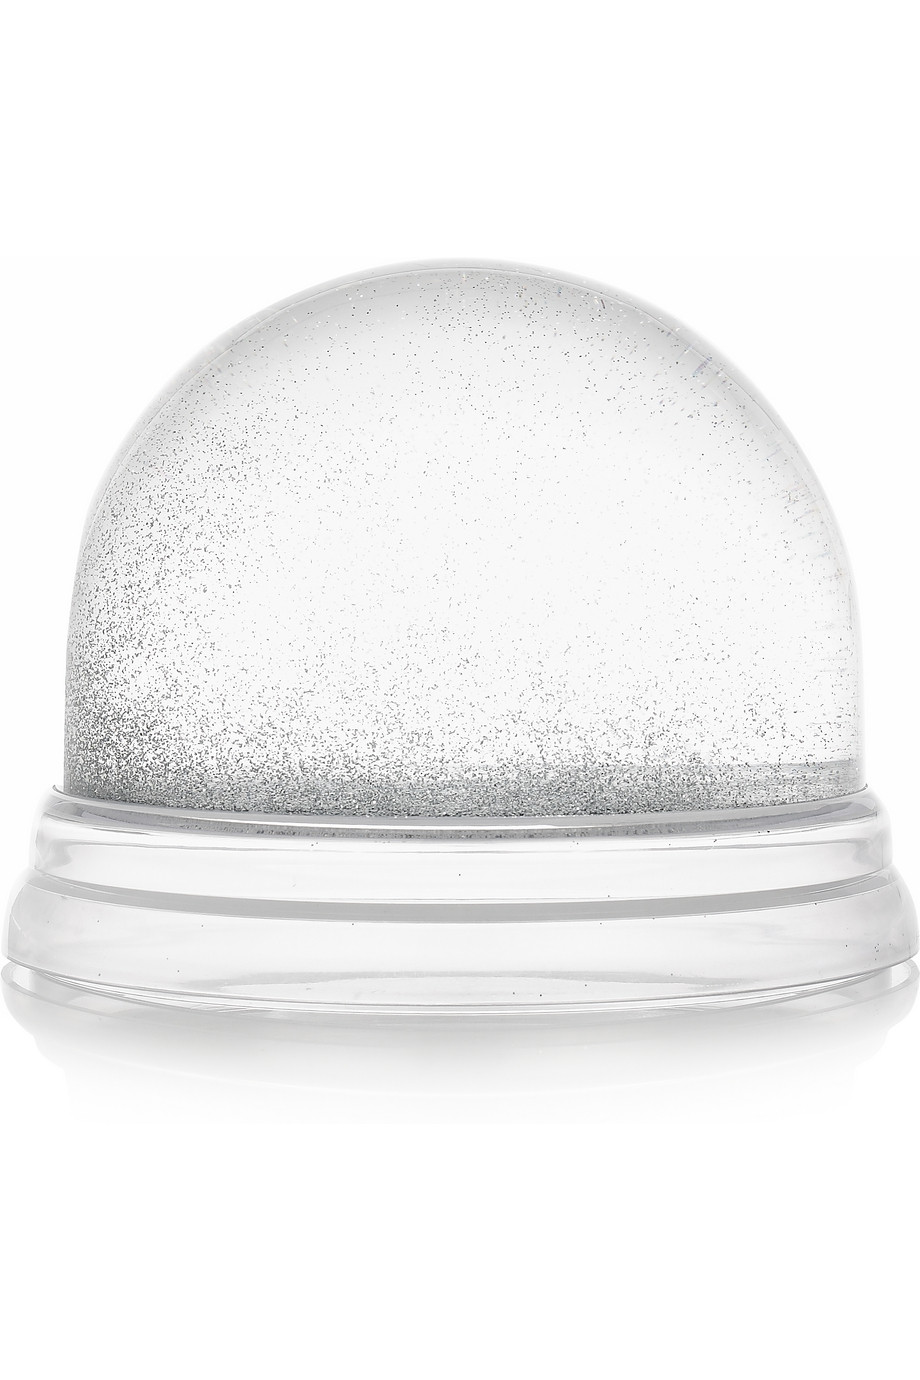 Png Snow Globe Vector Free Download image #30095